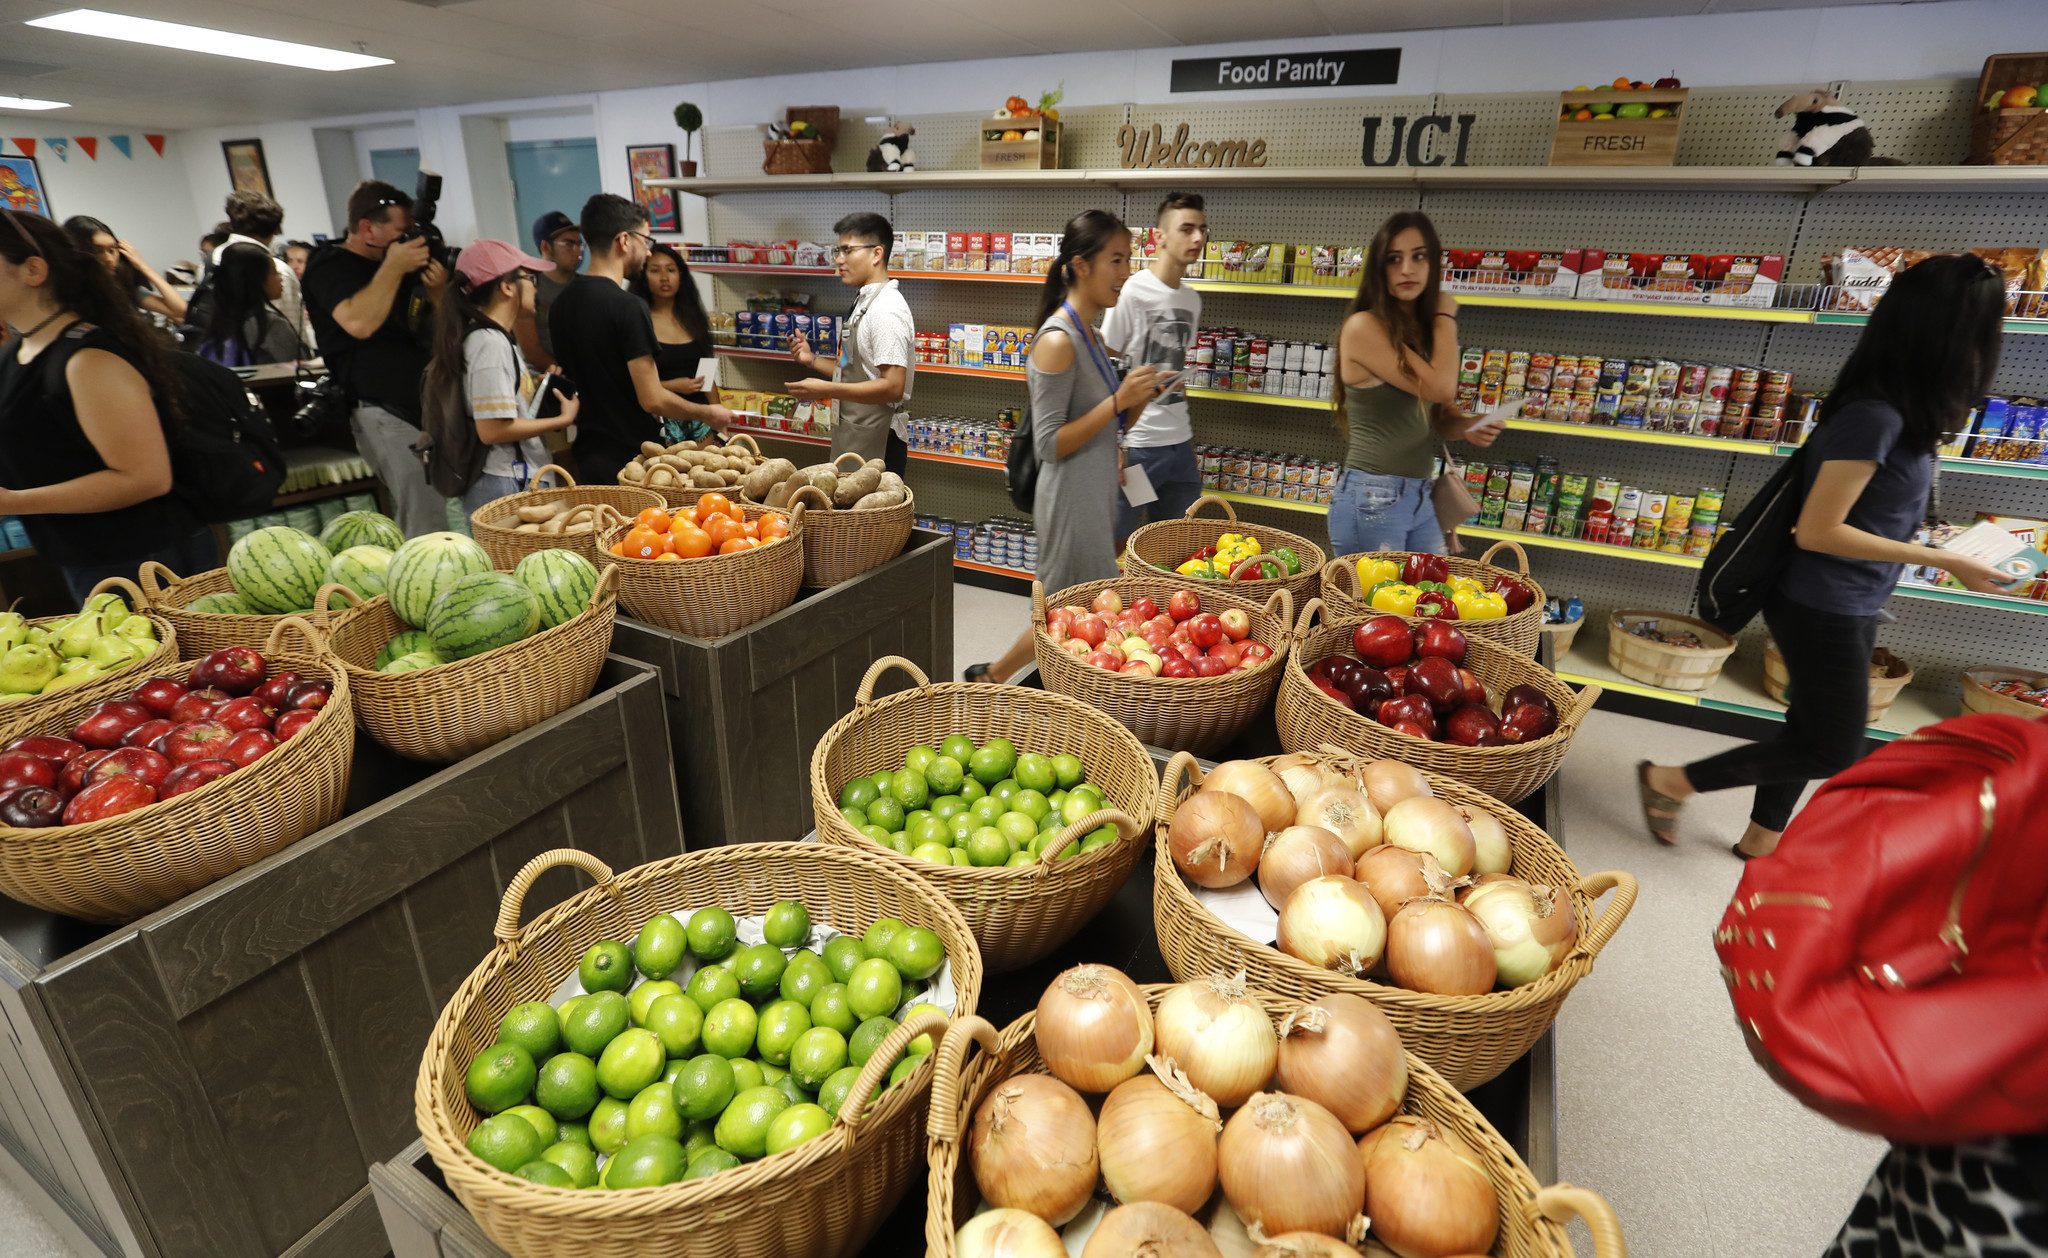 UC Irvine opens expansive food pantry as more college students